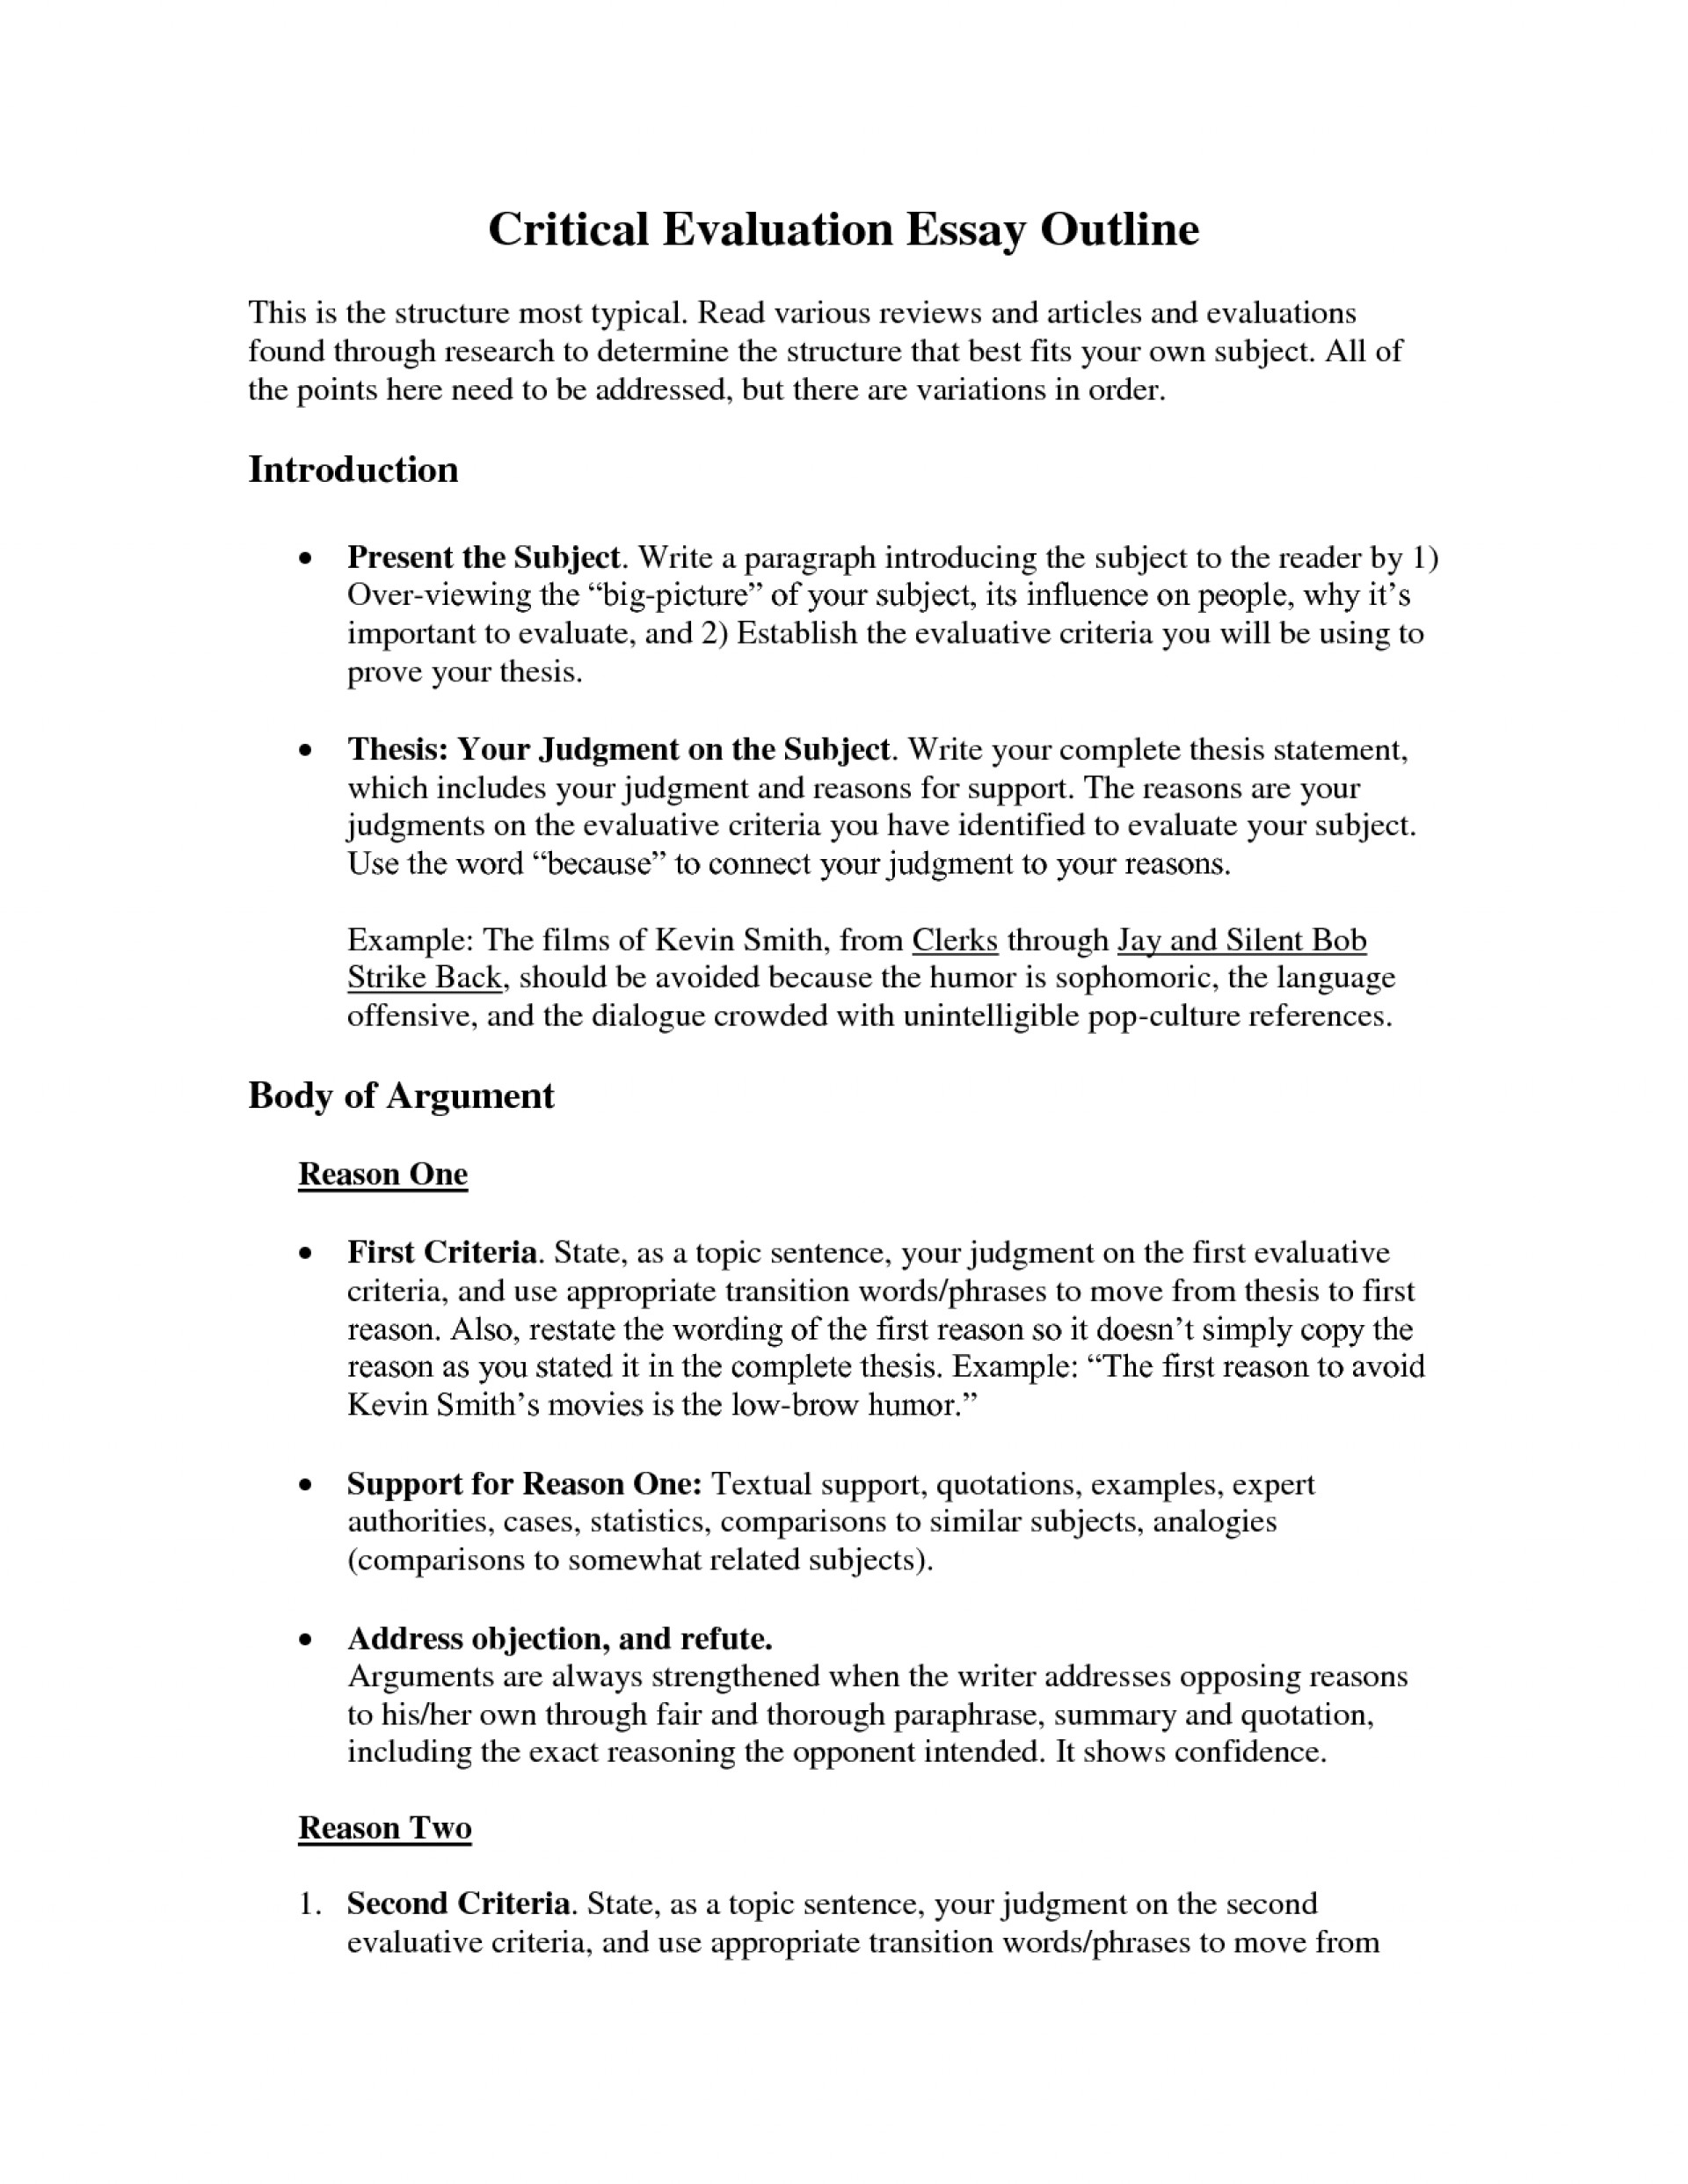 006 Discuss Literature Review Benefits Of Social Media Creative Evaluation Argument Essay Topics Critical Outline 1 Awful Questions With Criteria 1920